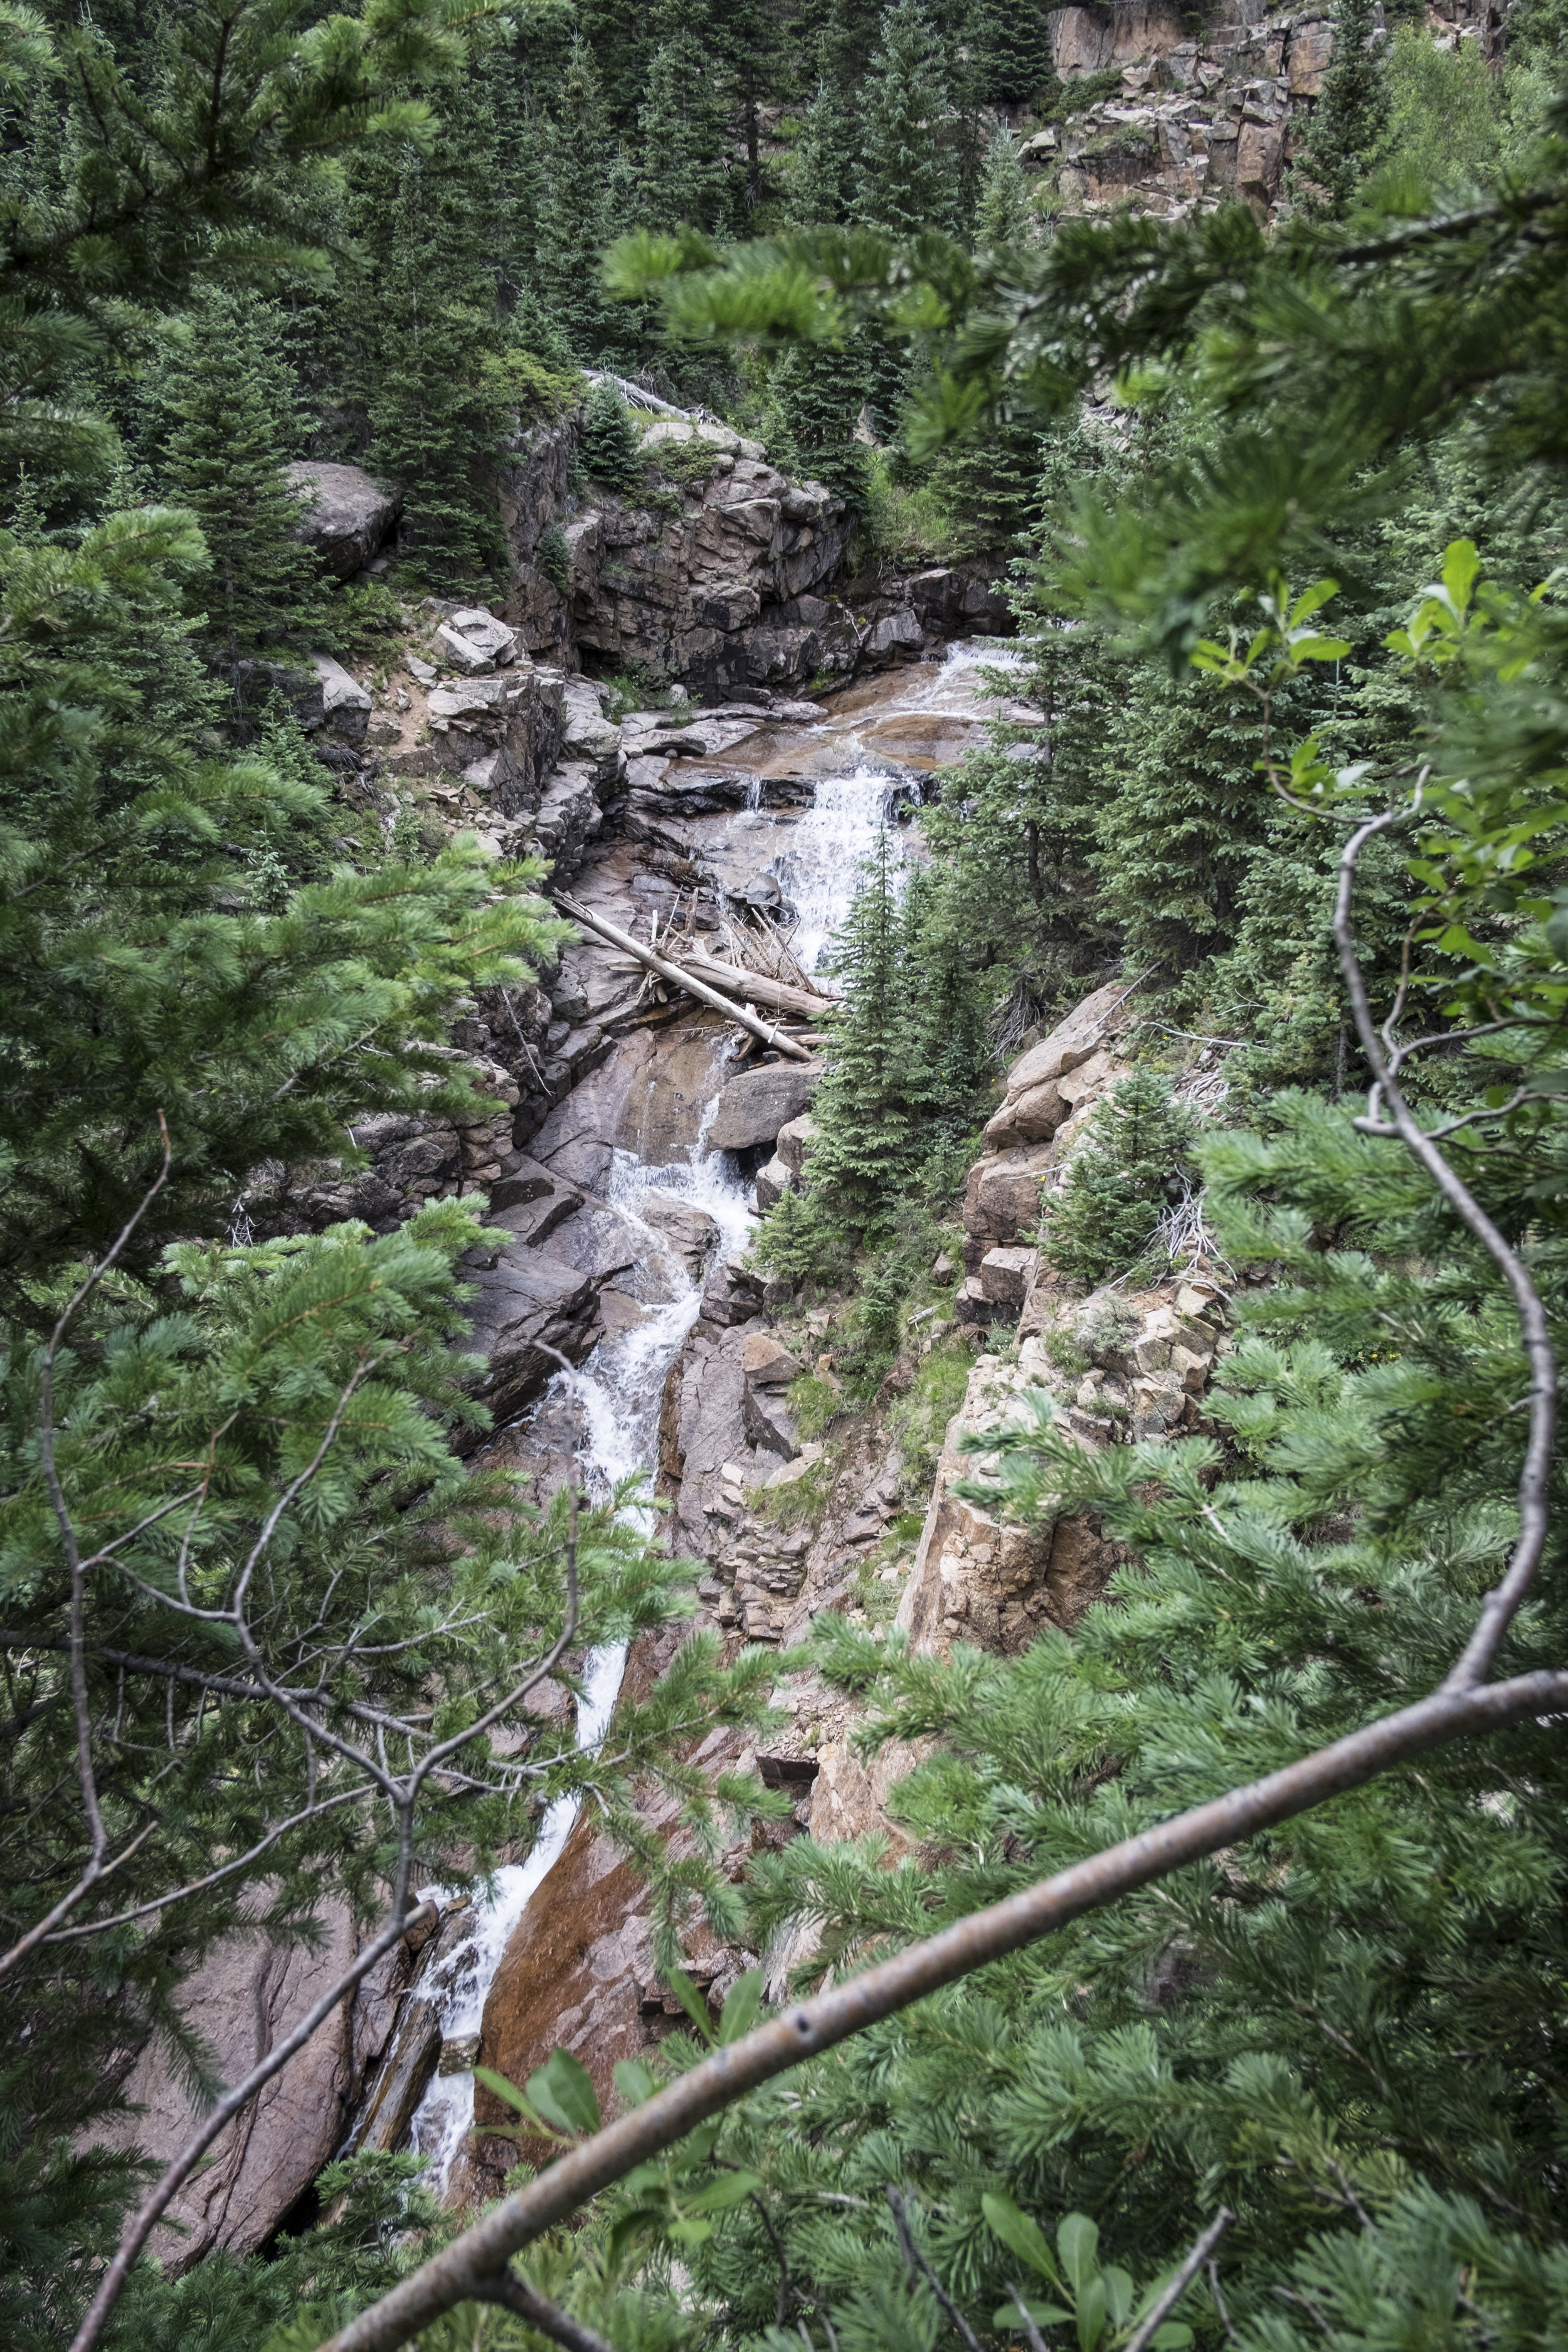 Drainages into Rock Creek